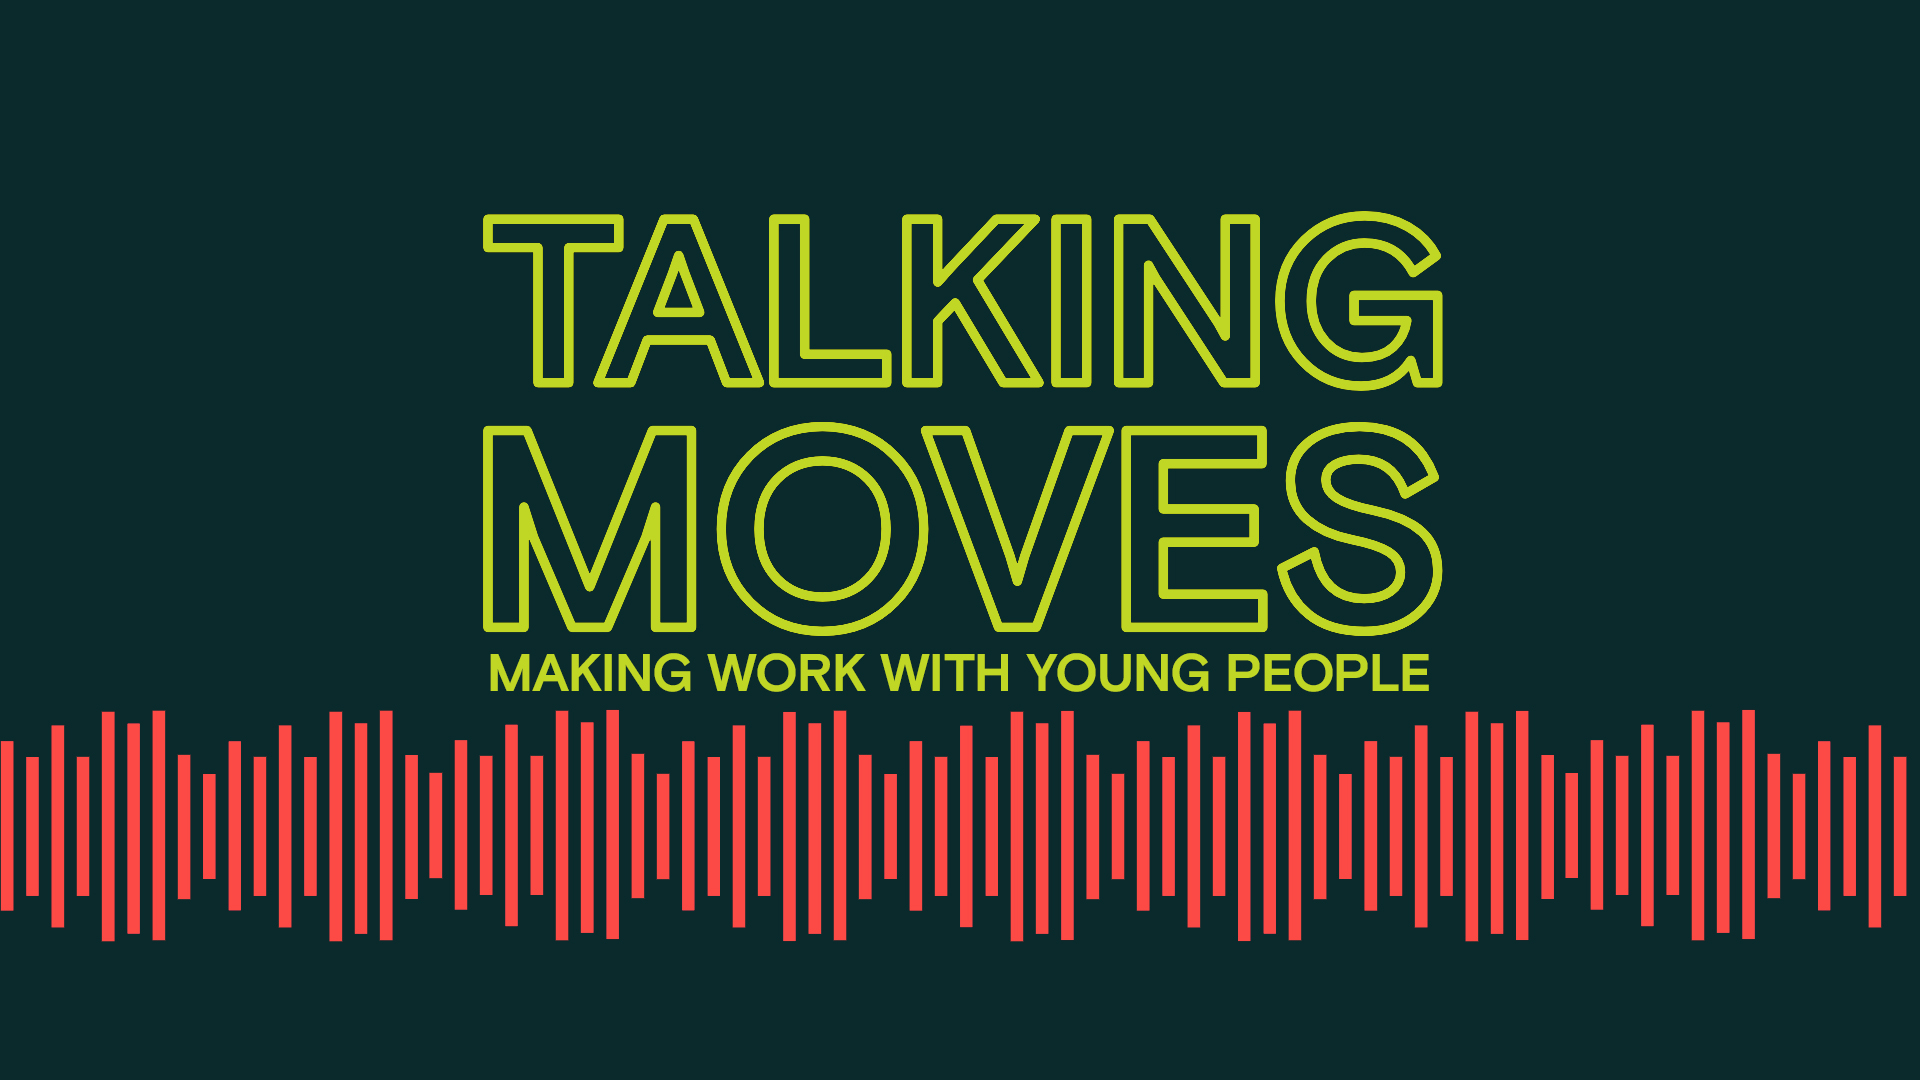 Making Work with Young People Talking Moves title